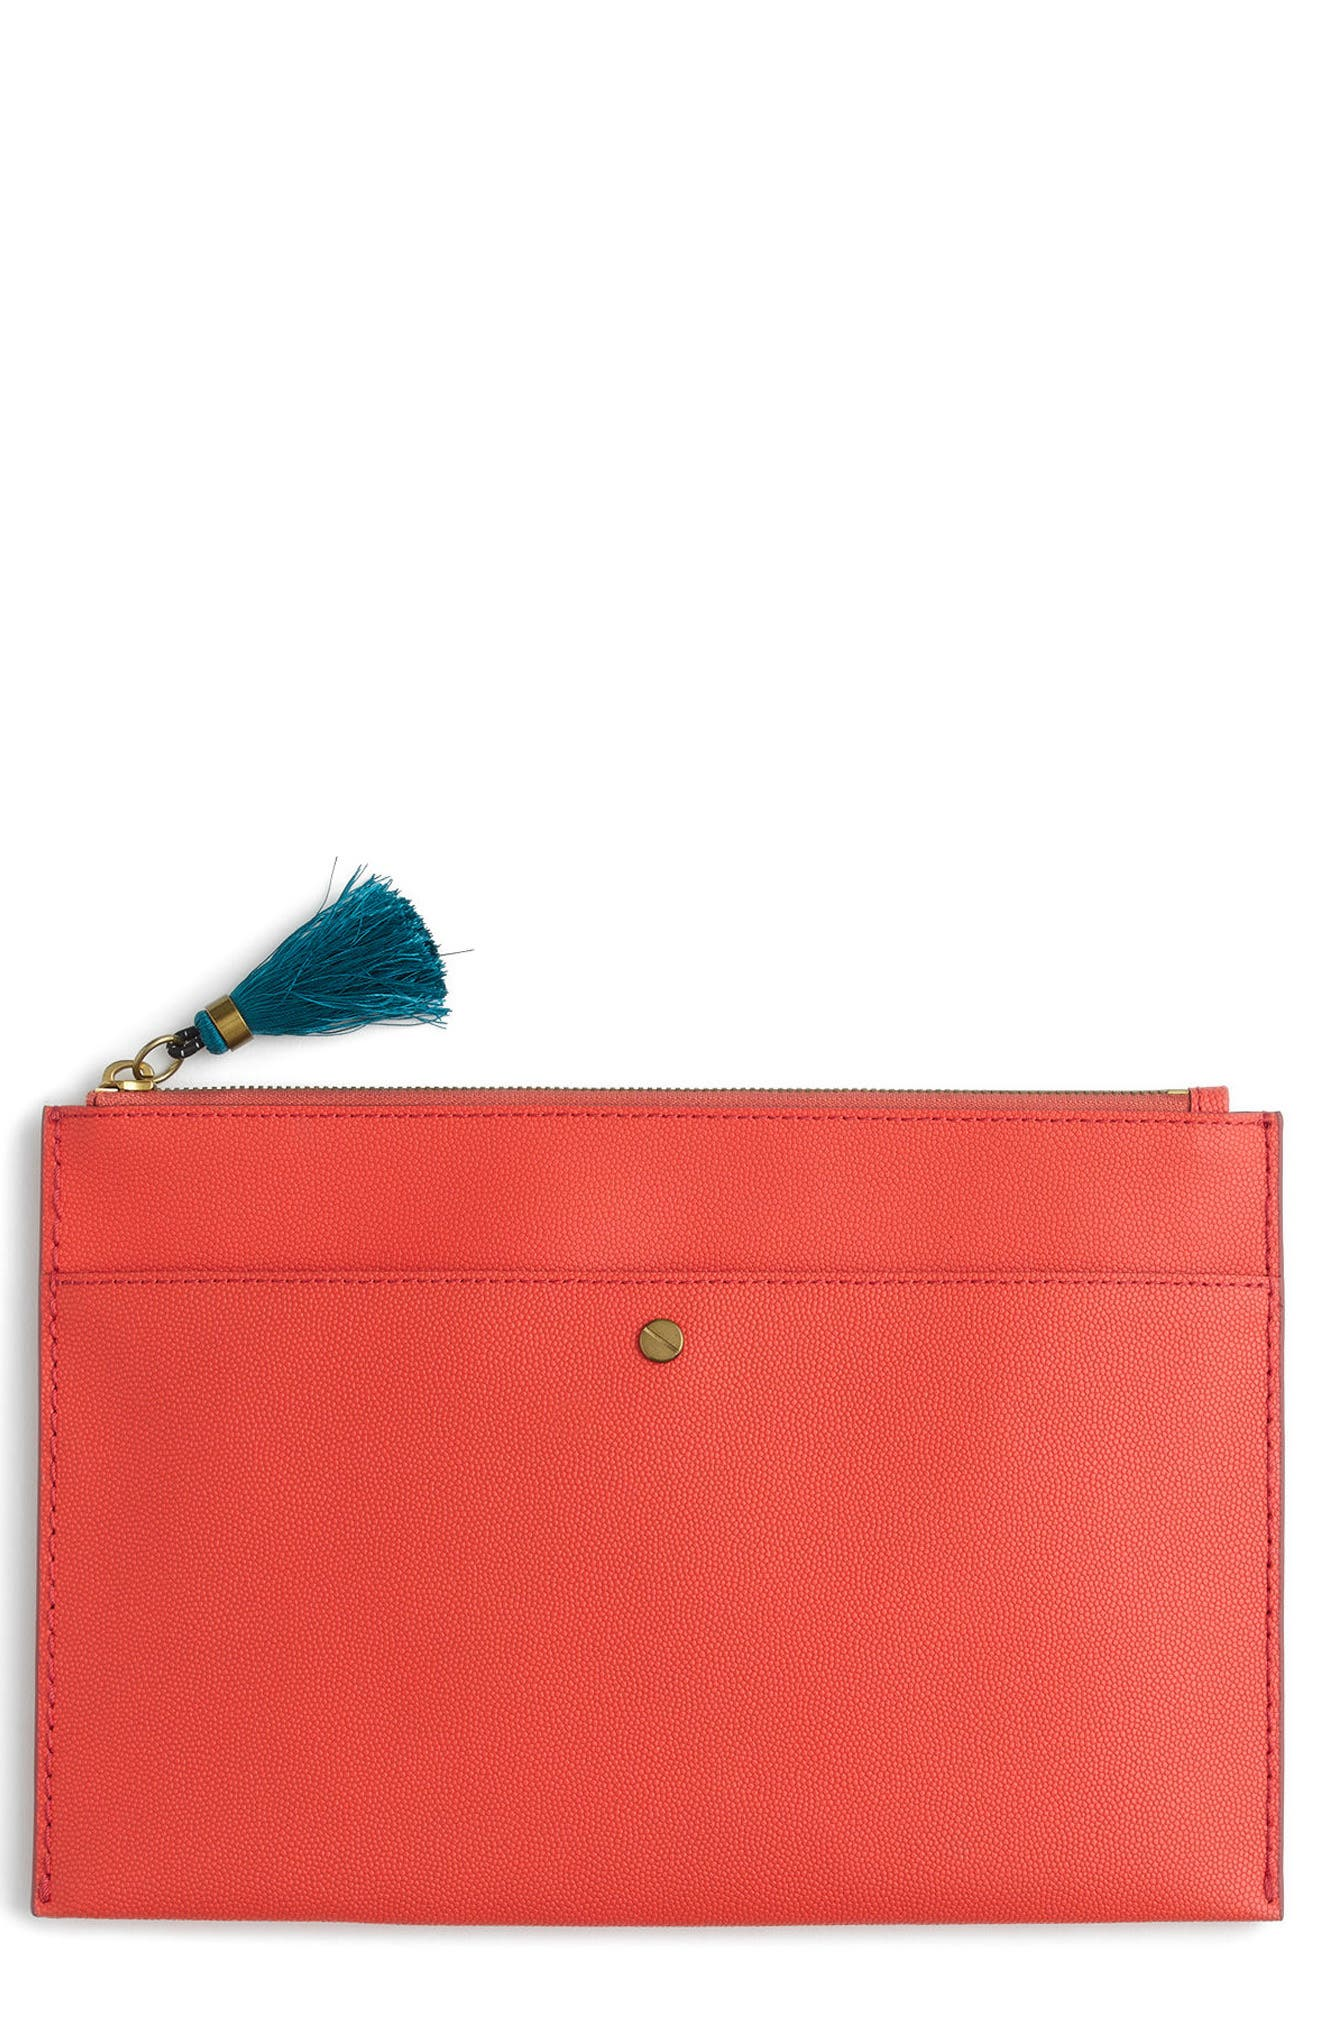 Main Image - J. Crew Large Leather Zip Pouch